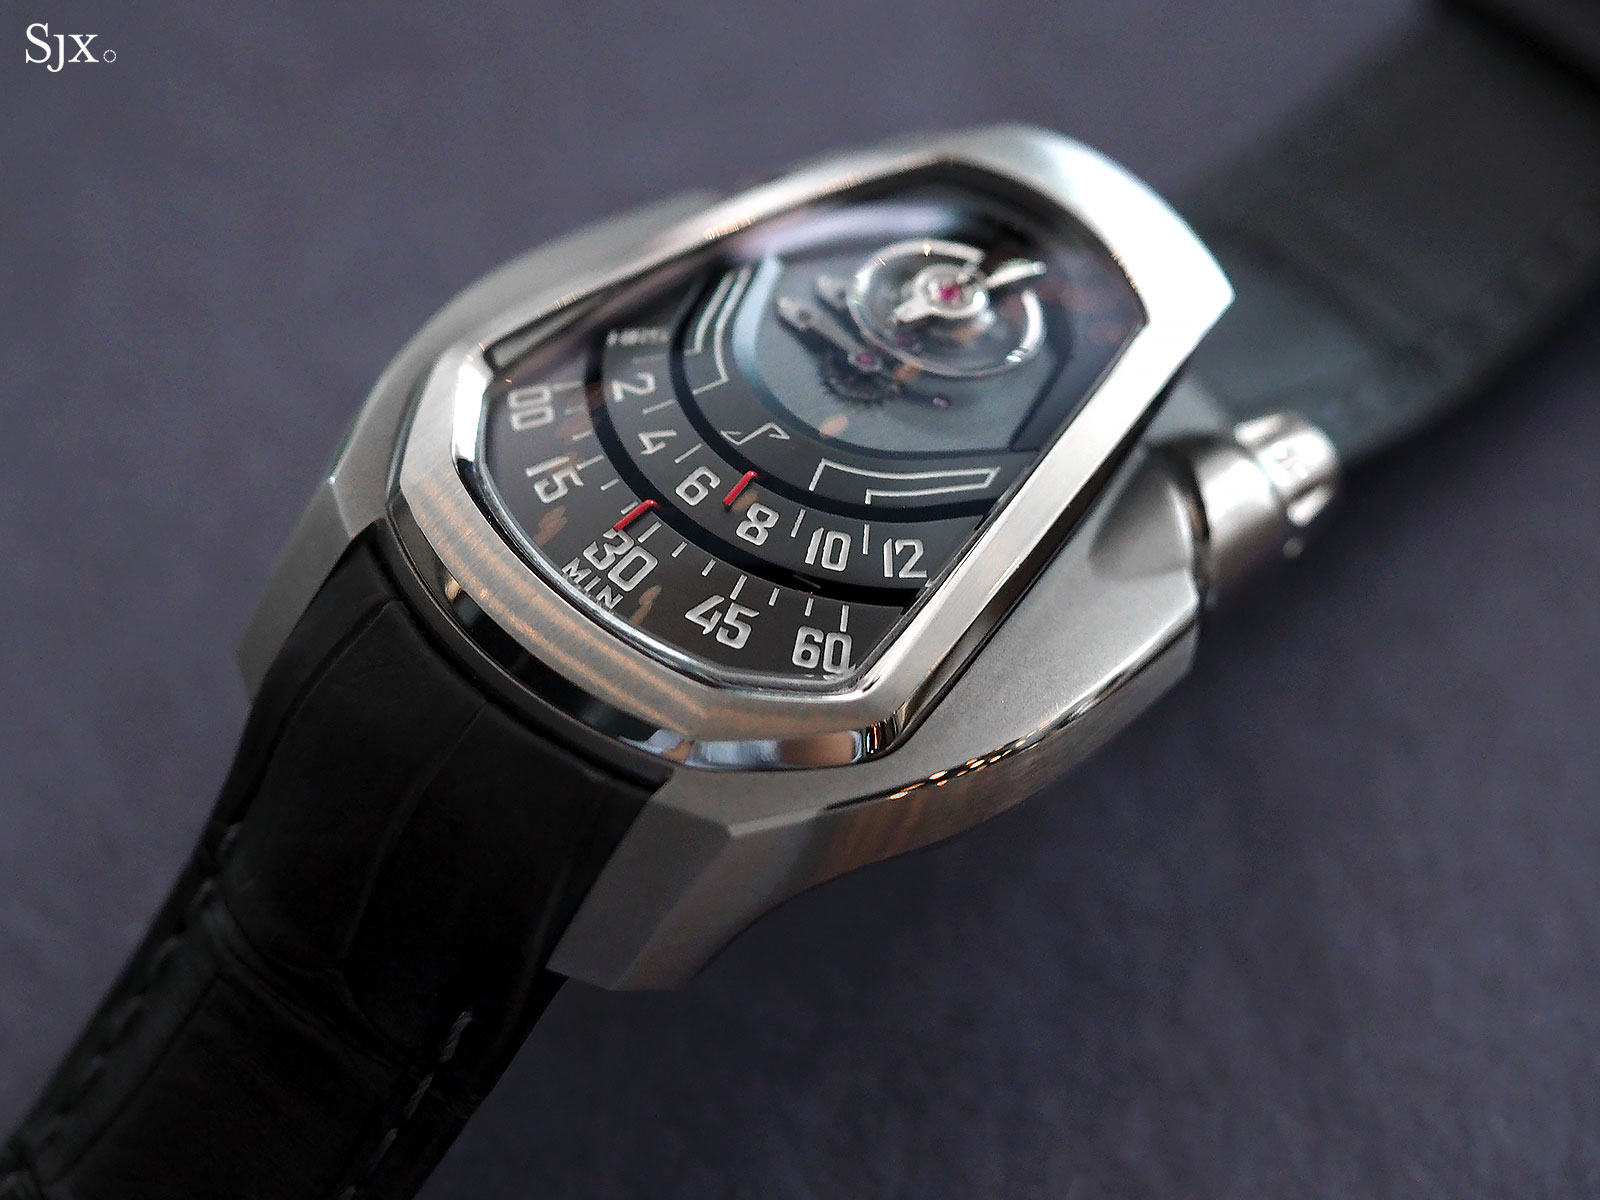 Phenomen Axiom watch titanium 1